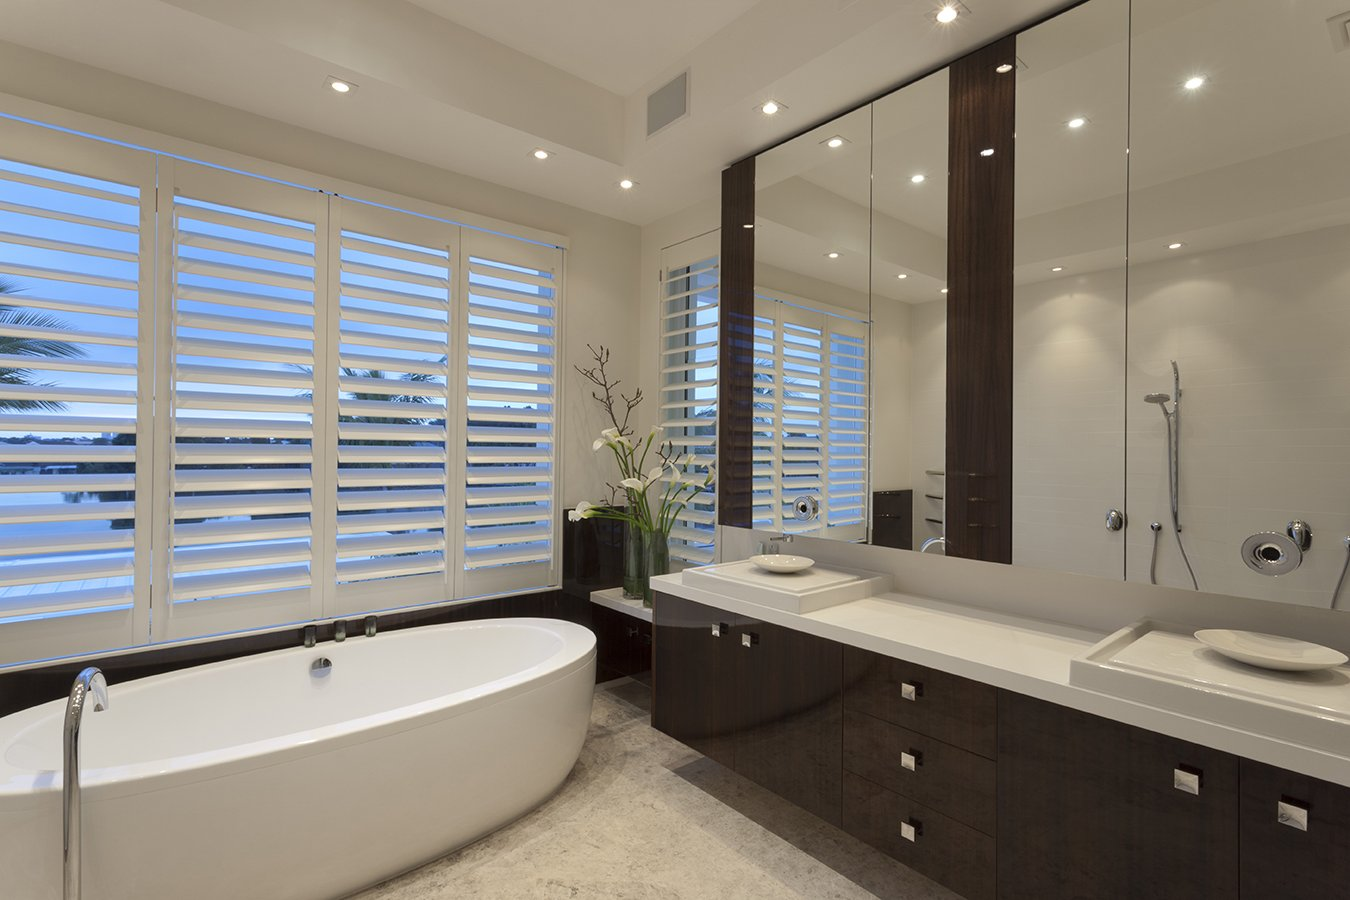 Bathroom renovations hornsby - Small Bathroom Renovations Sydney Sts Plumbing